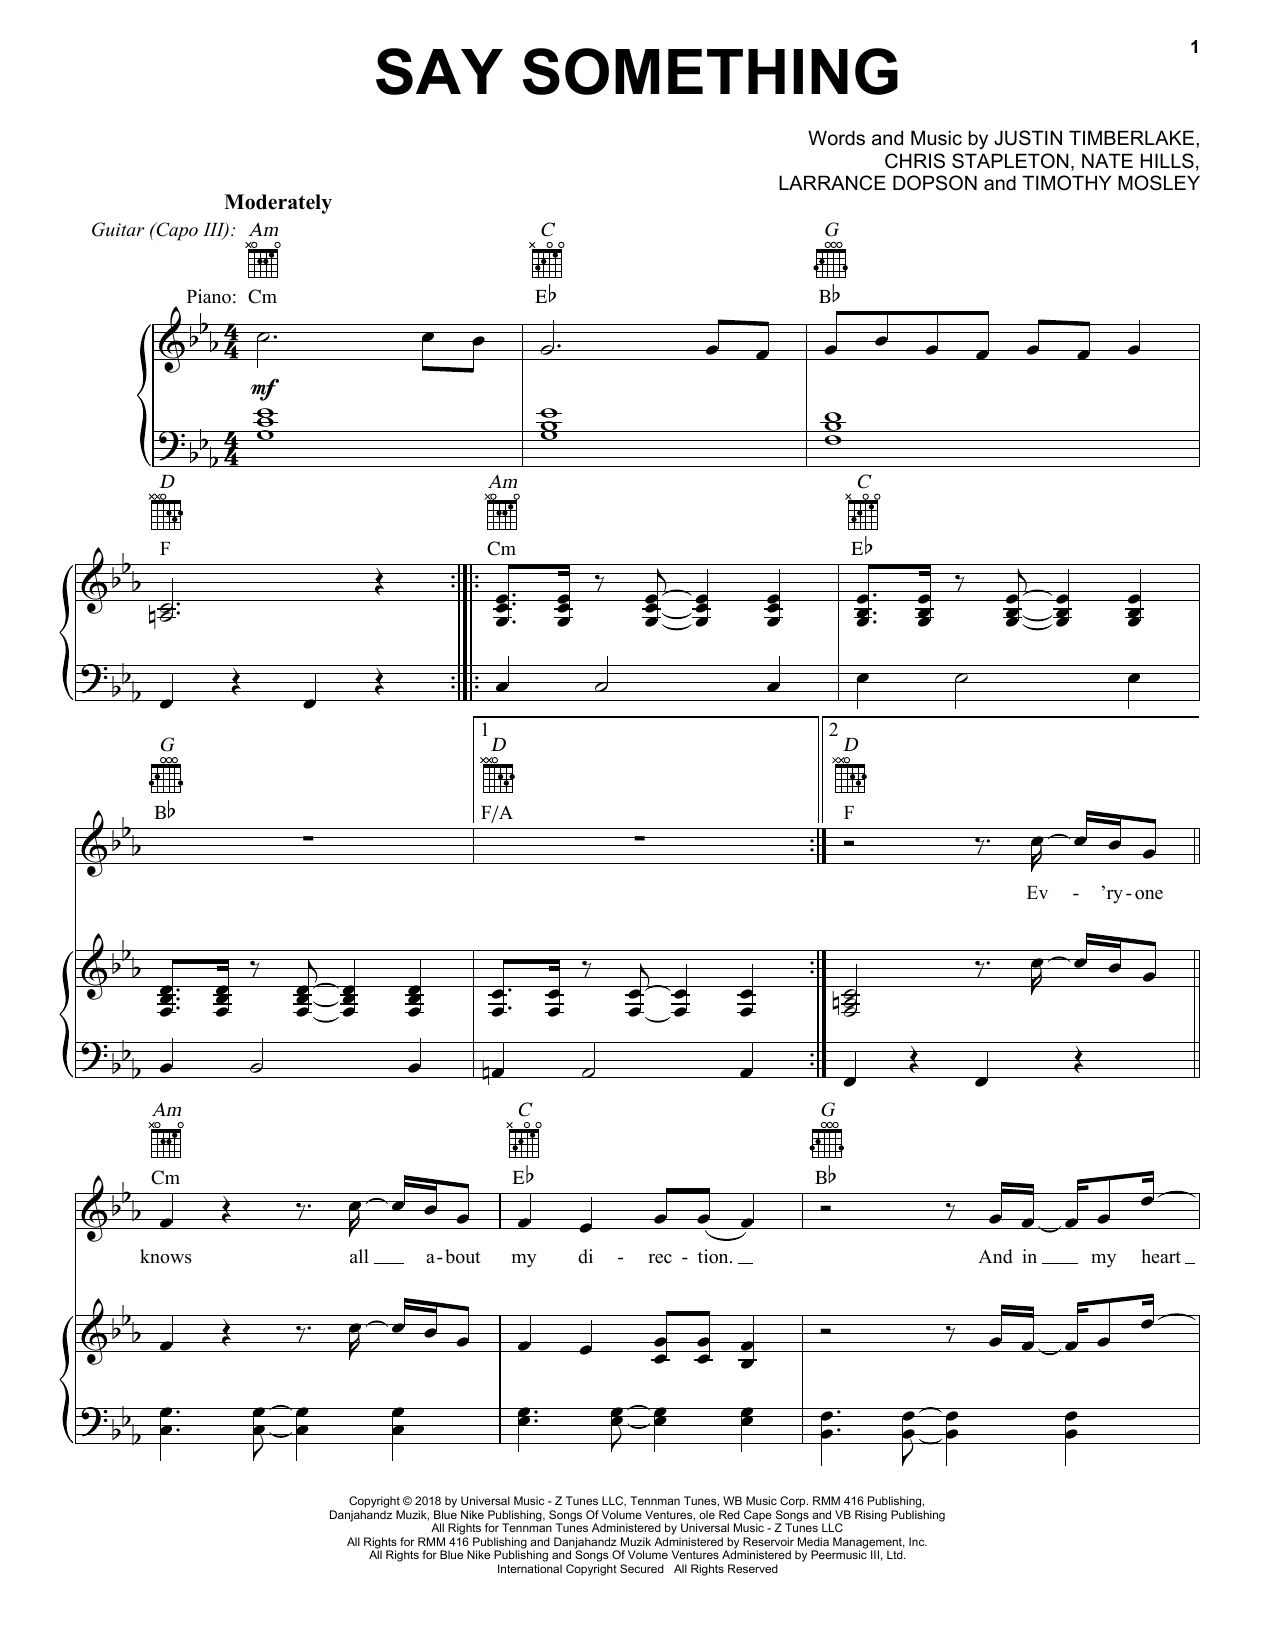 Say Something Chords Justin Timberlake Say Something Feat Chris Stapleton Sheet Music Notes Chords Download Printable Piano Vocal Guitar Right Hand Melody